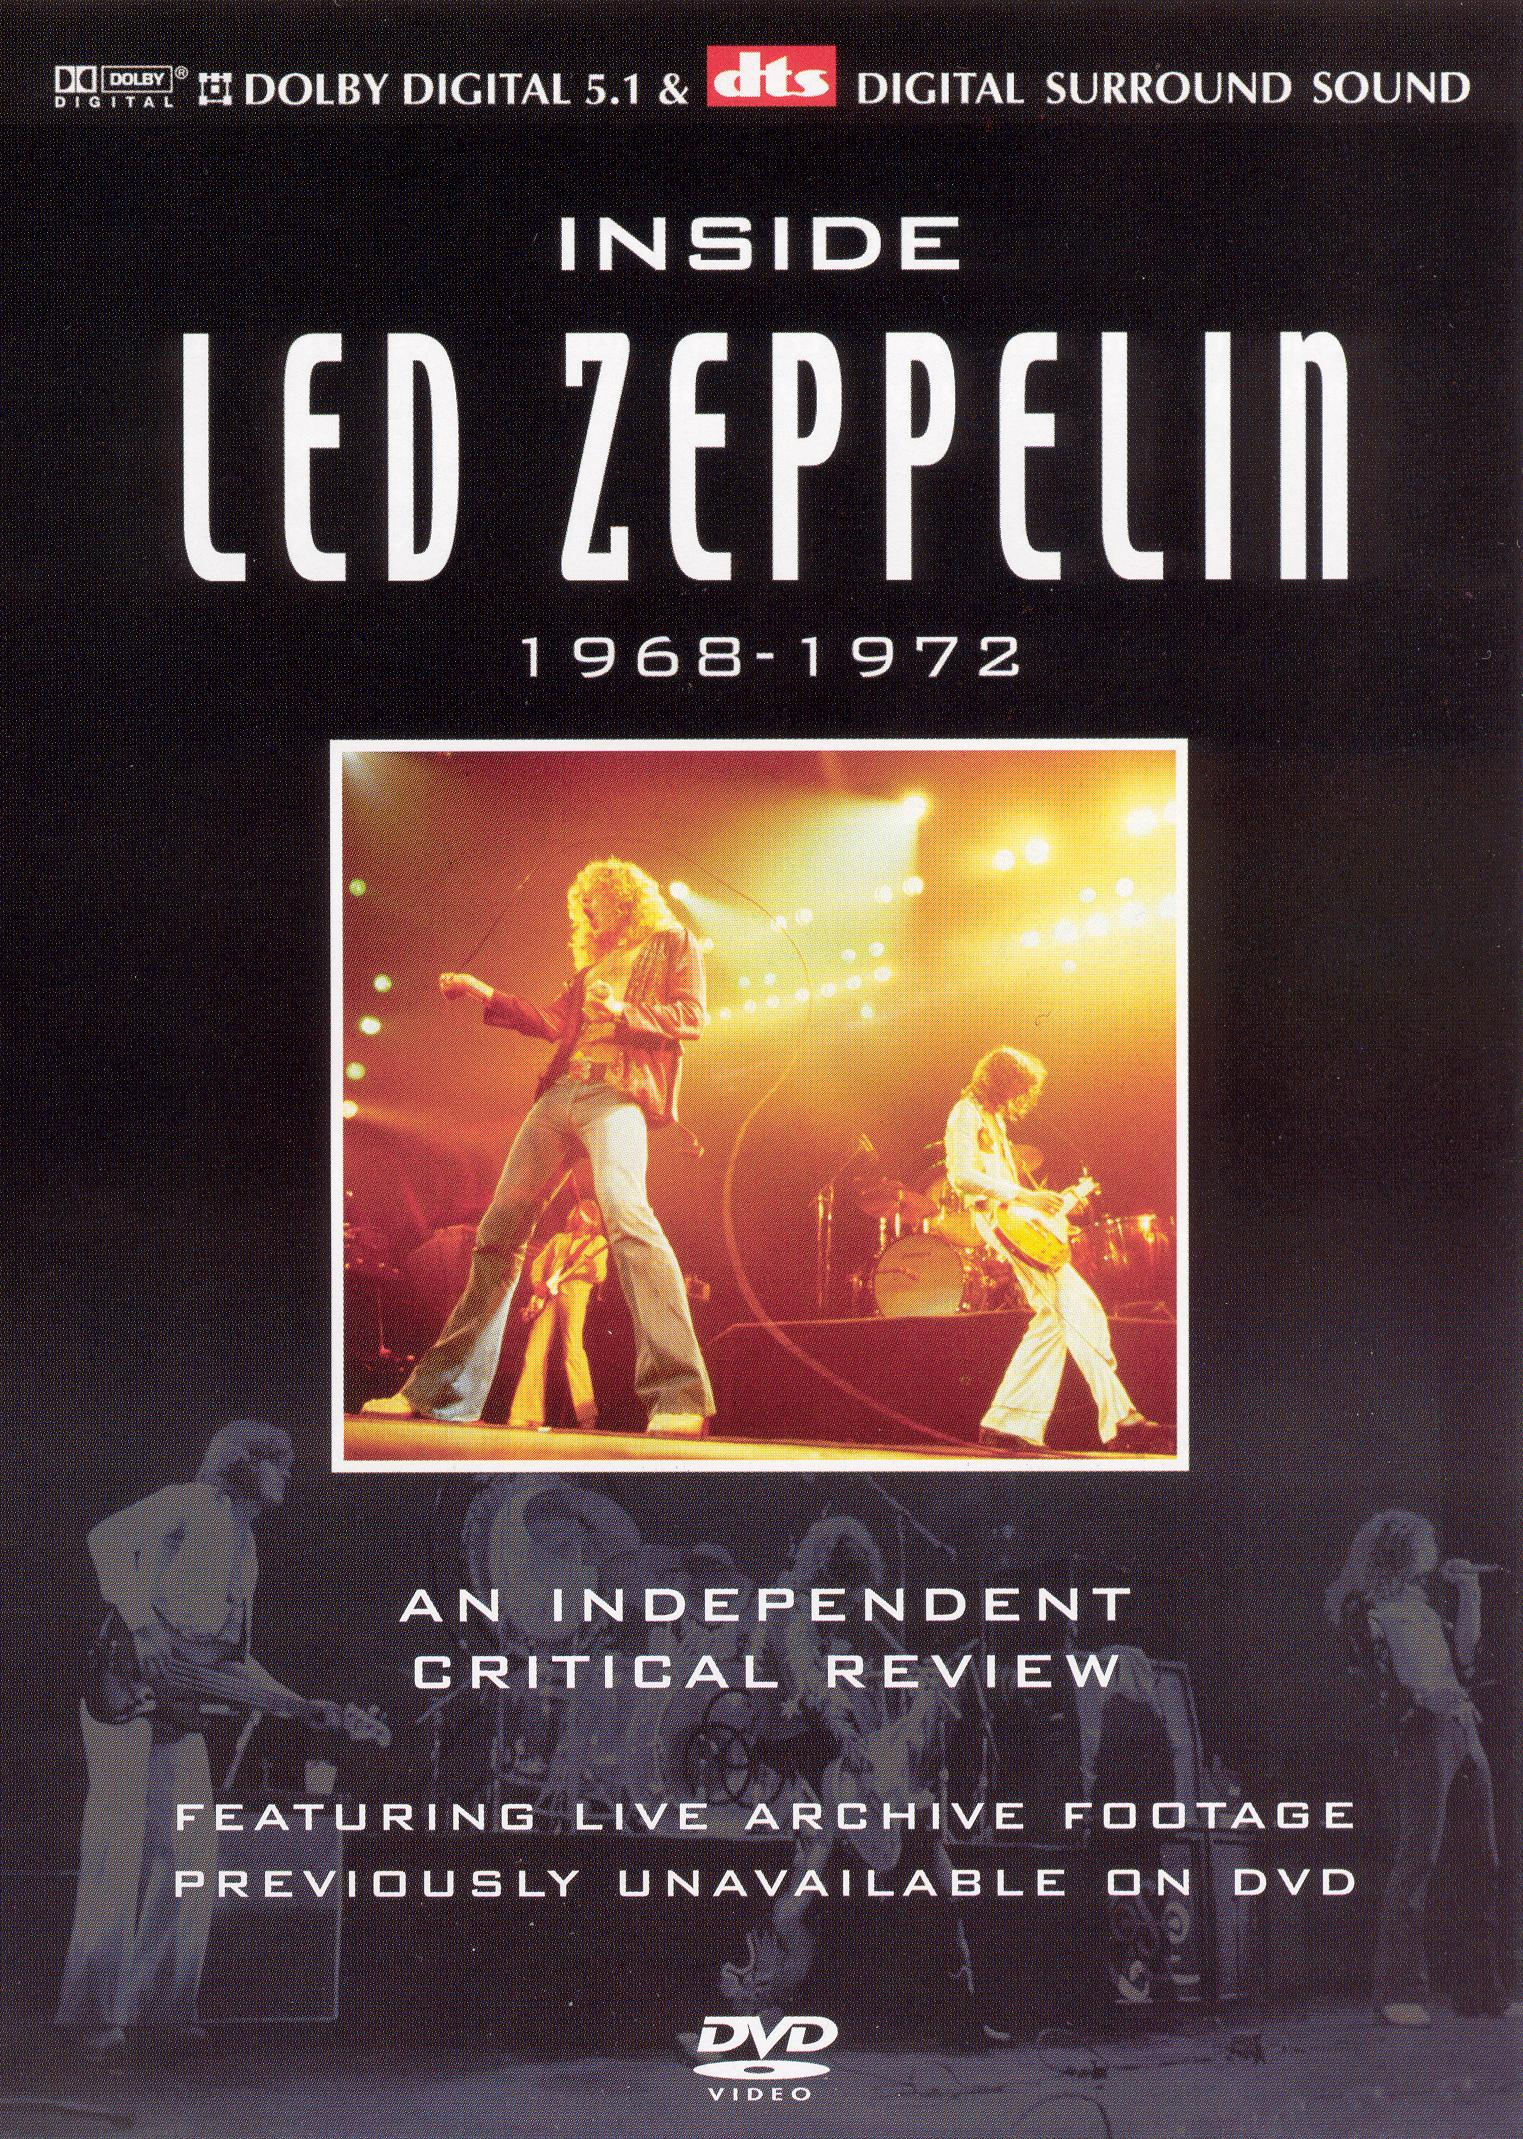 Inside Led Zeppelin: A Critical Review - 1968-1972